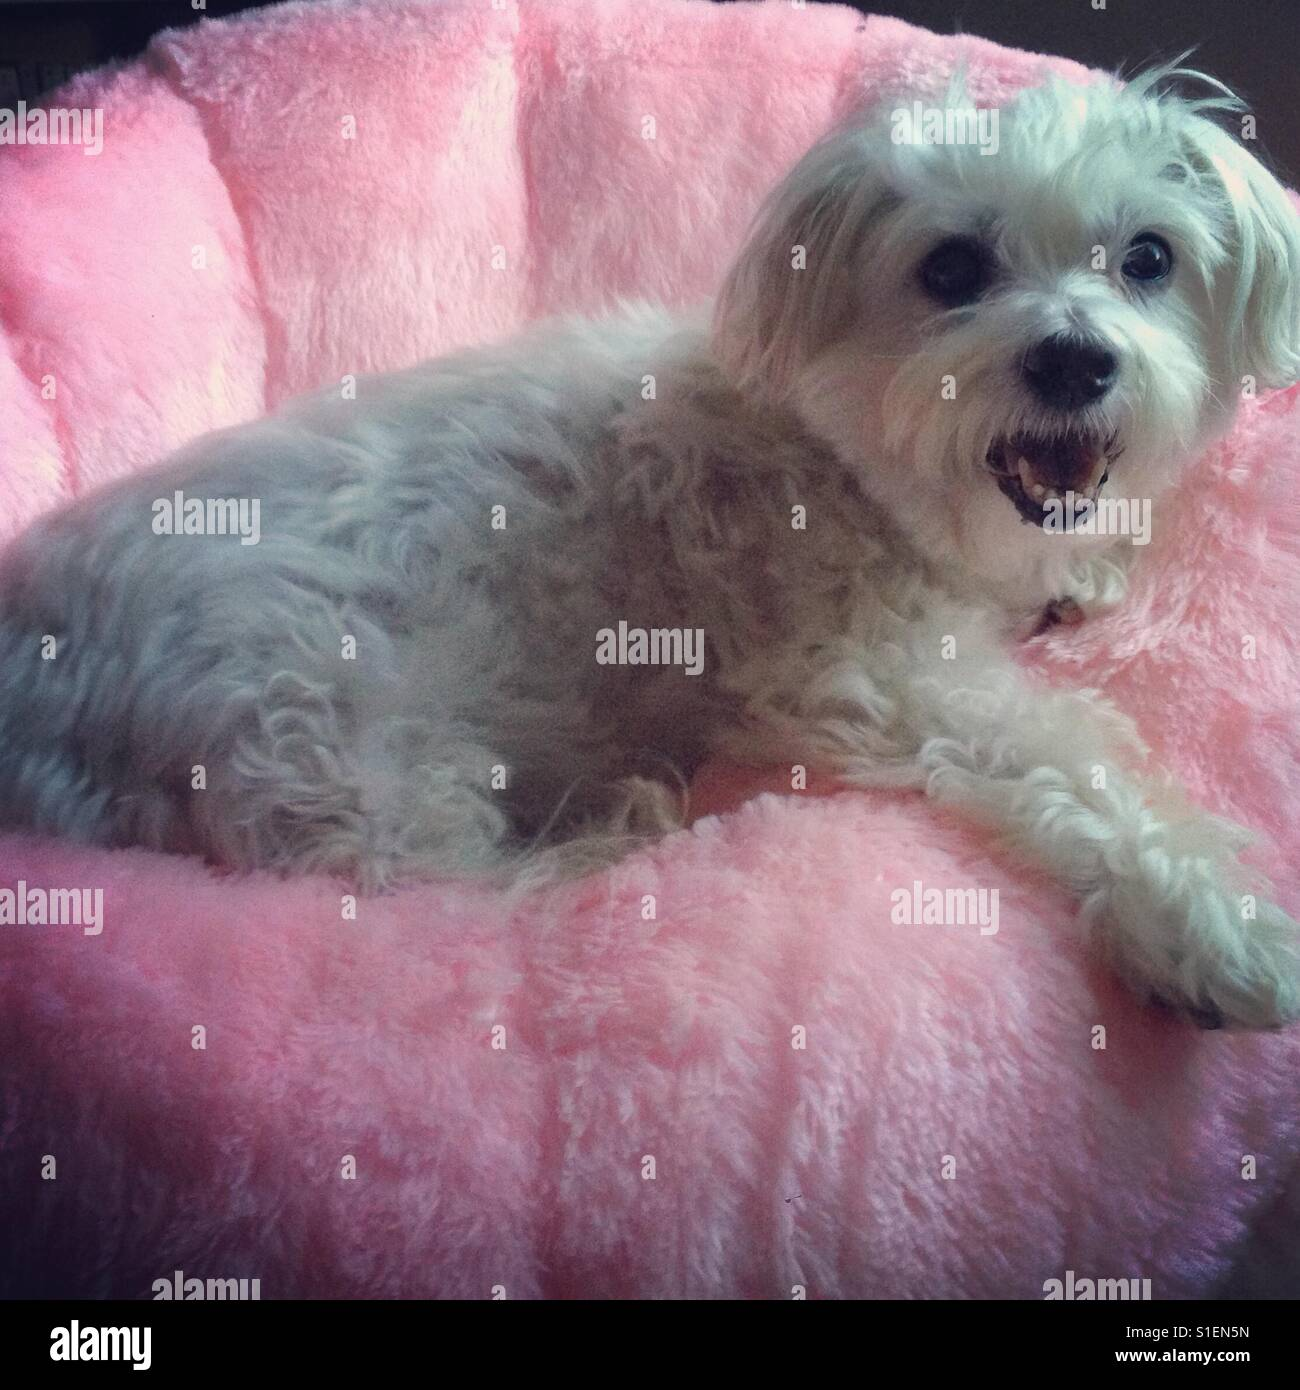 Fluffy dog lounging on pretty pink chair - Stock Image